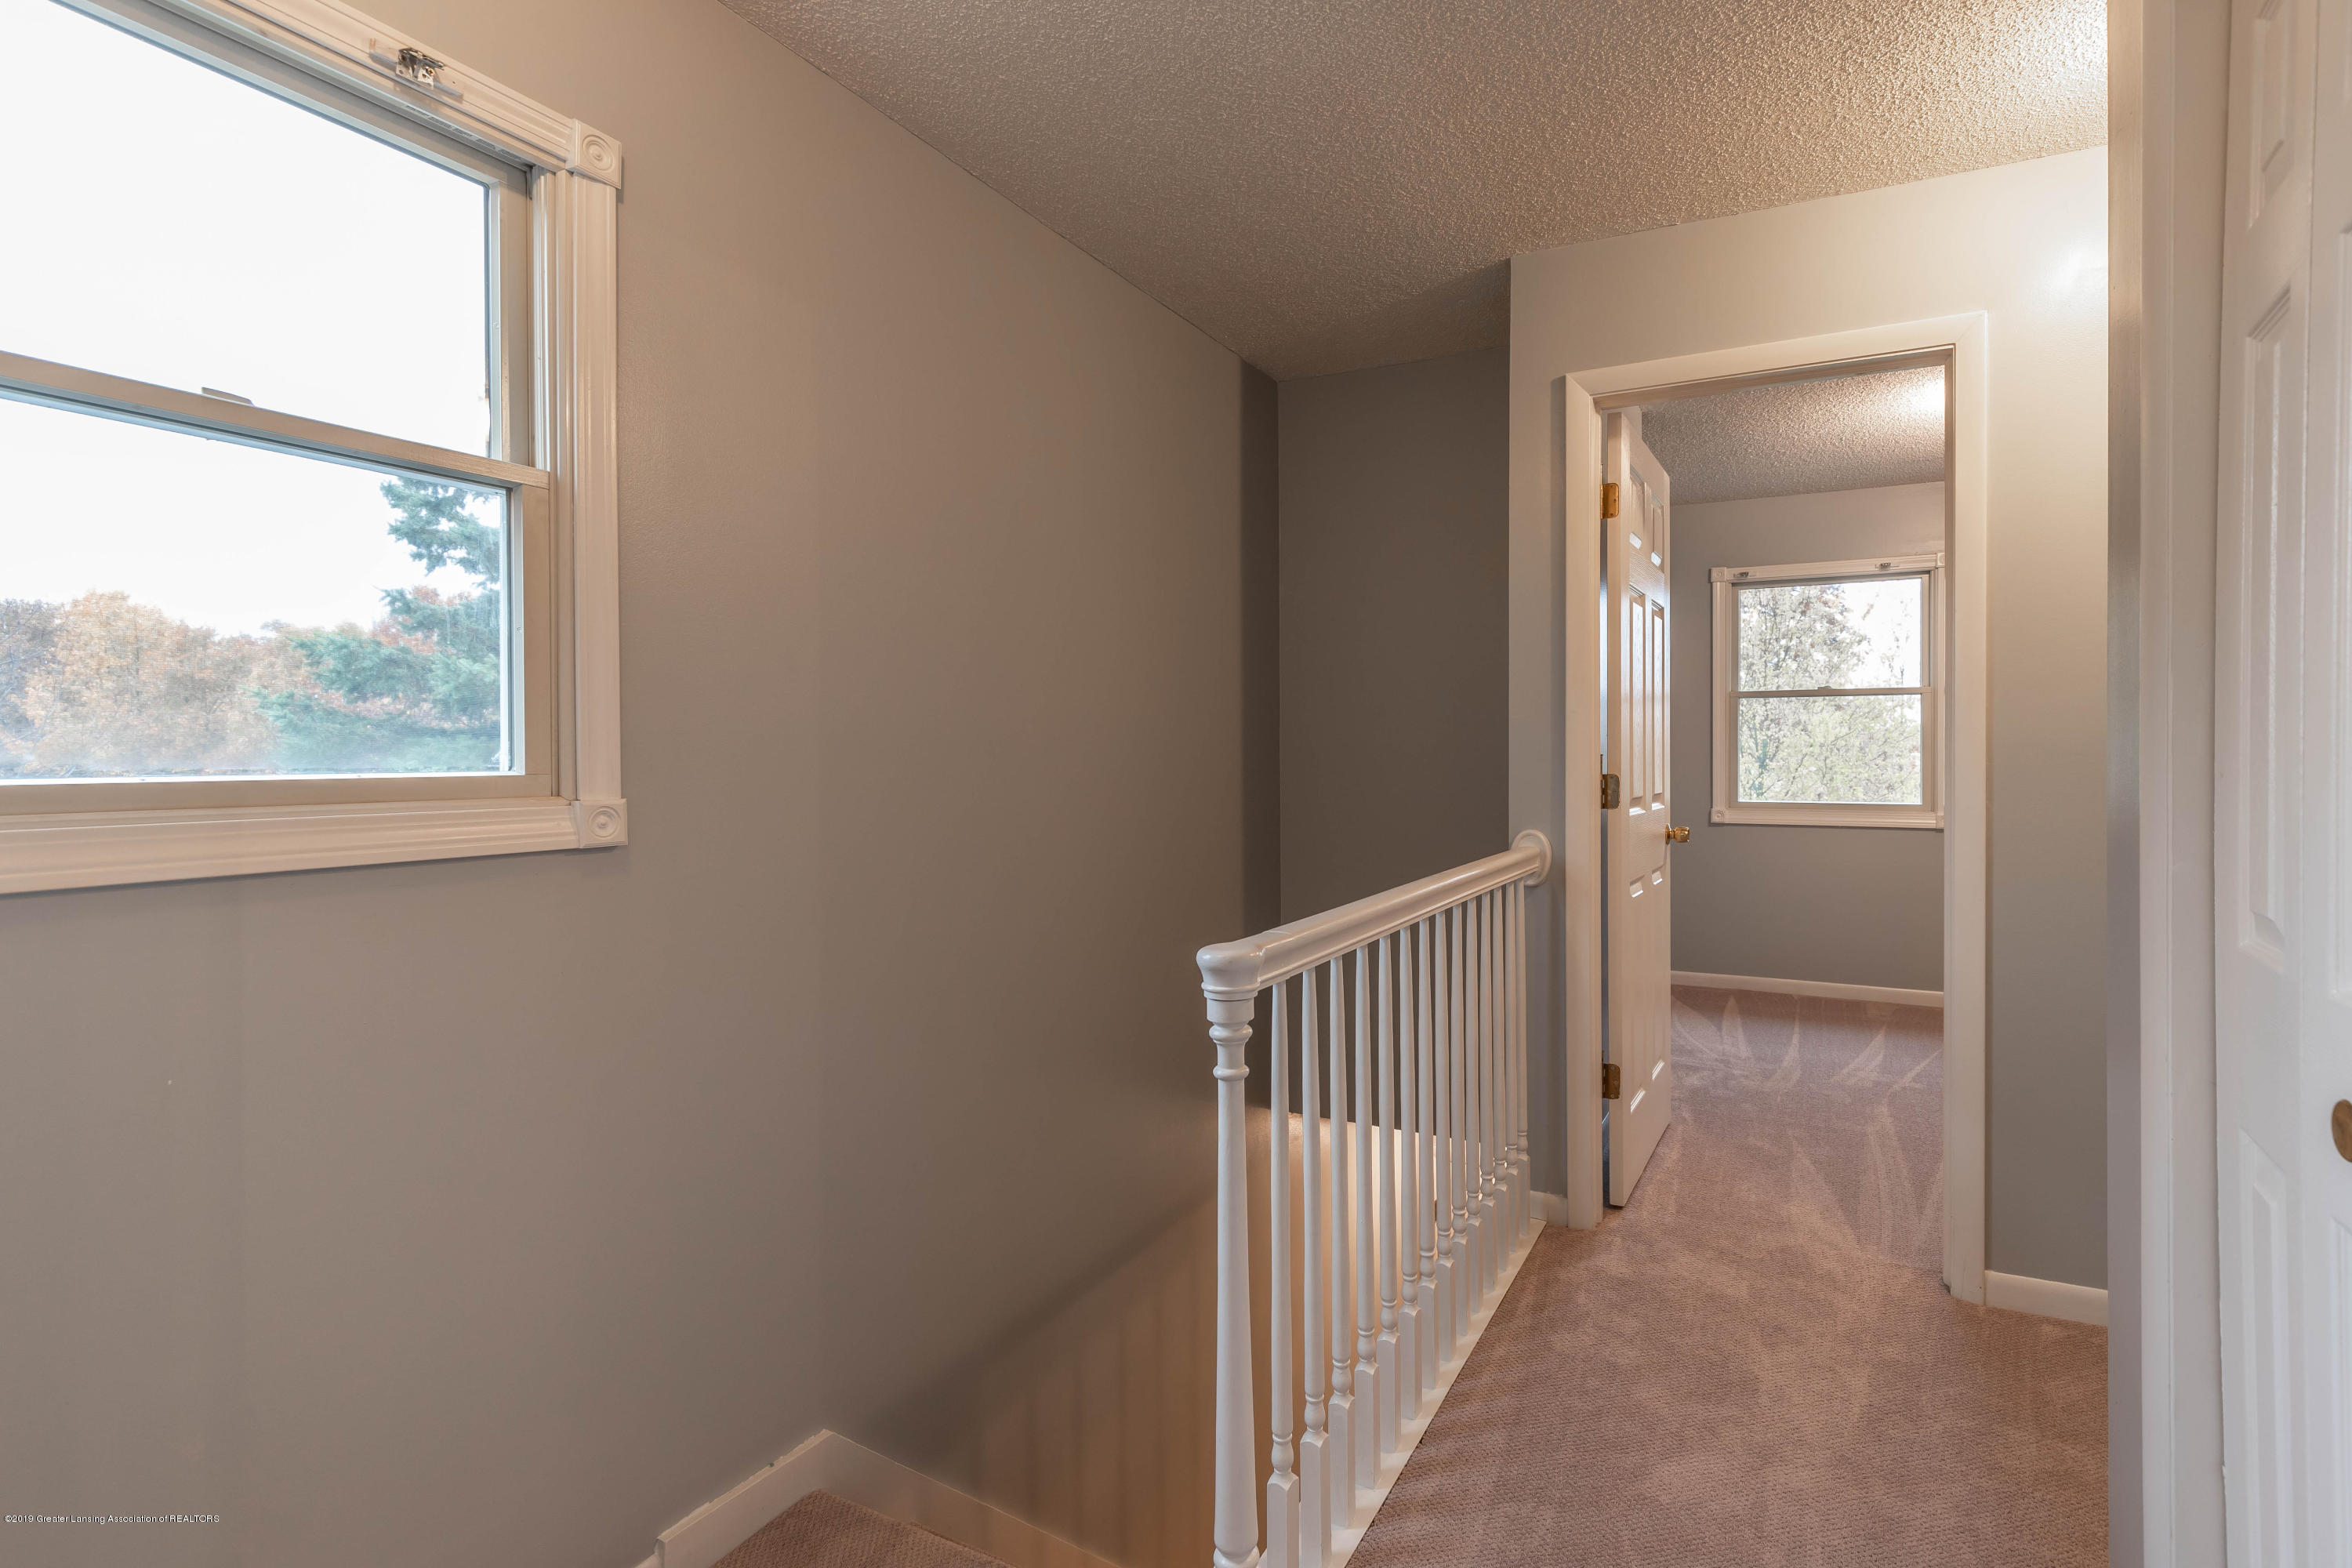 8436 E Spicerville Hwy - spicerus (1 of 1) - 14